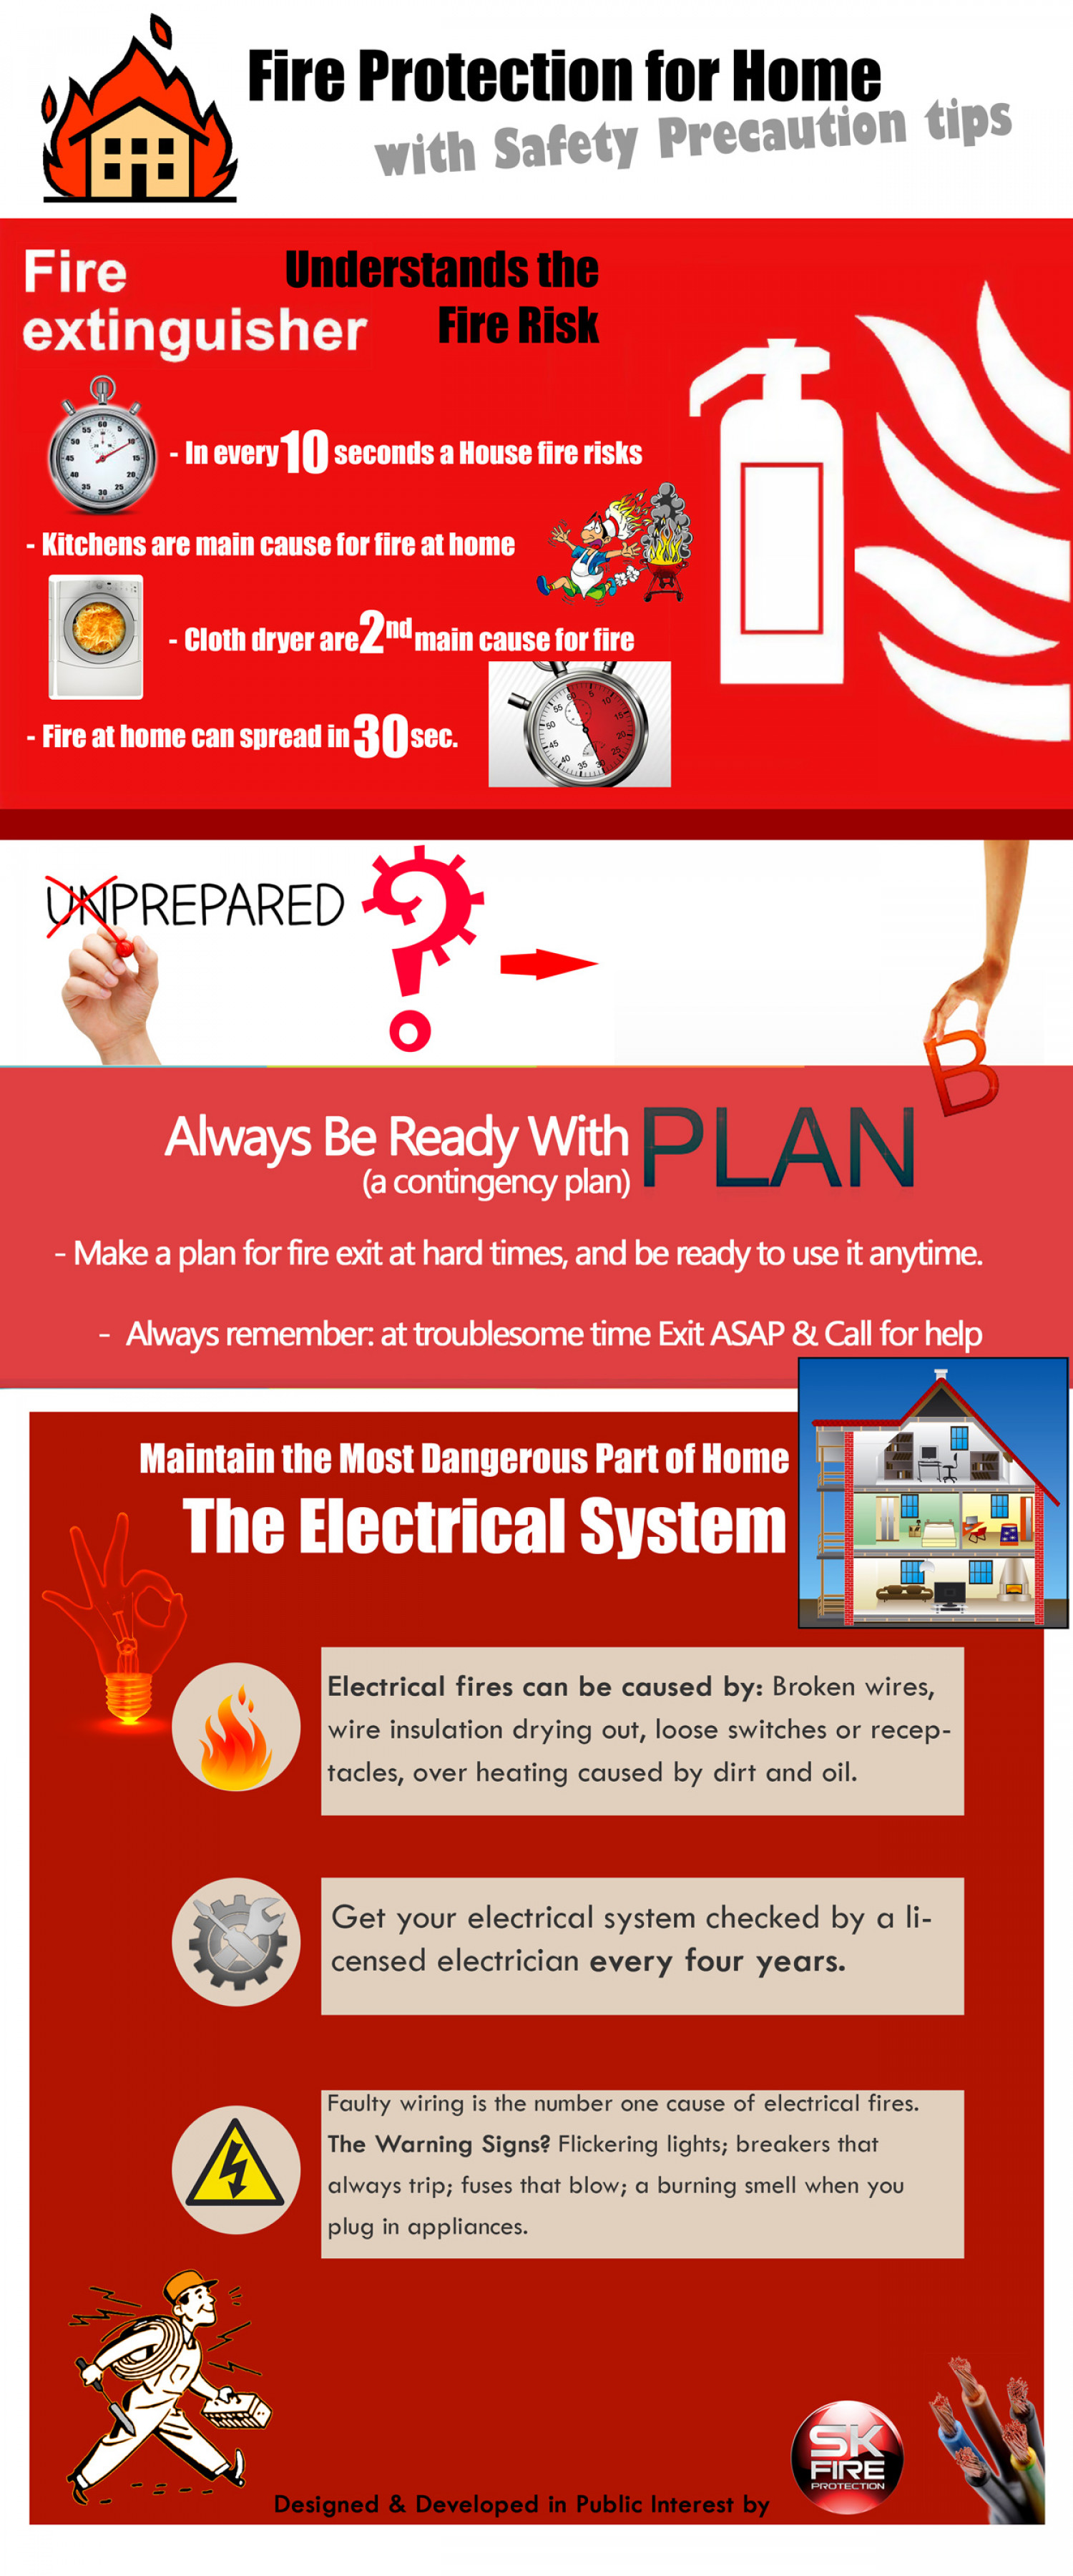 Fire protection for home with safety precaution tips for How to protect your house from fire